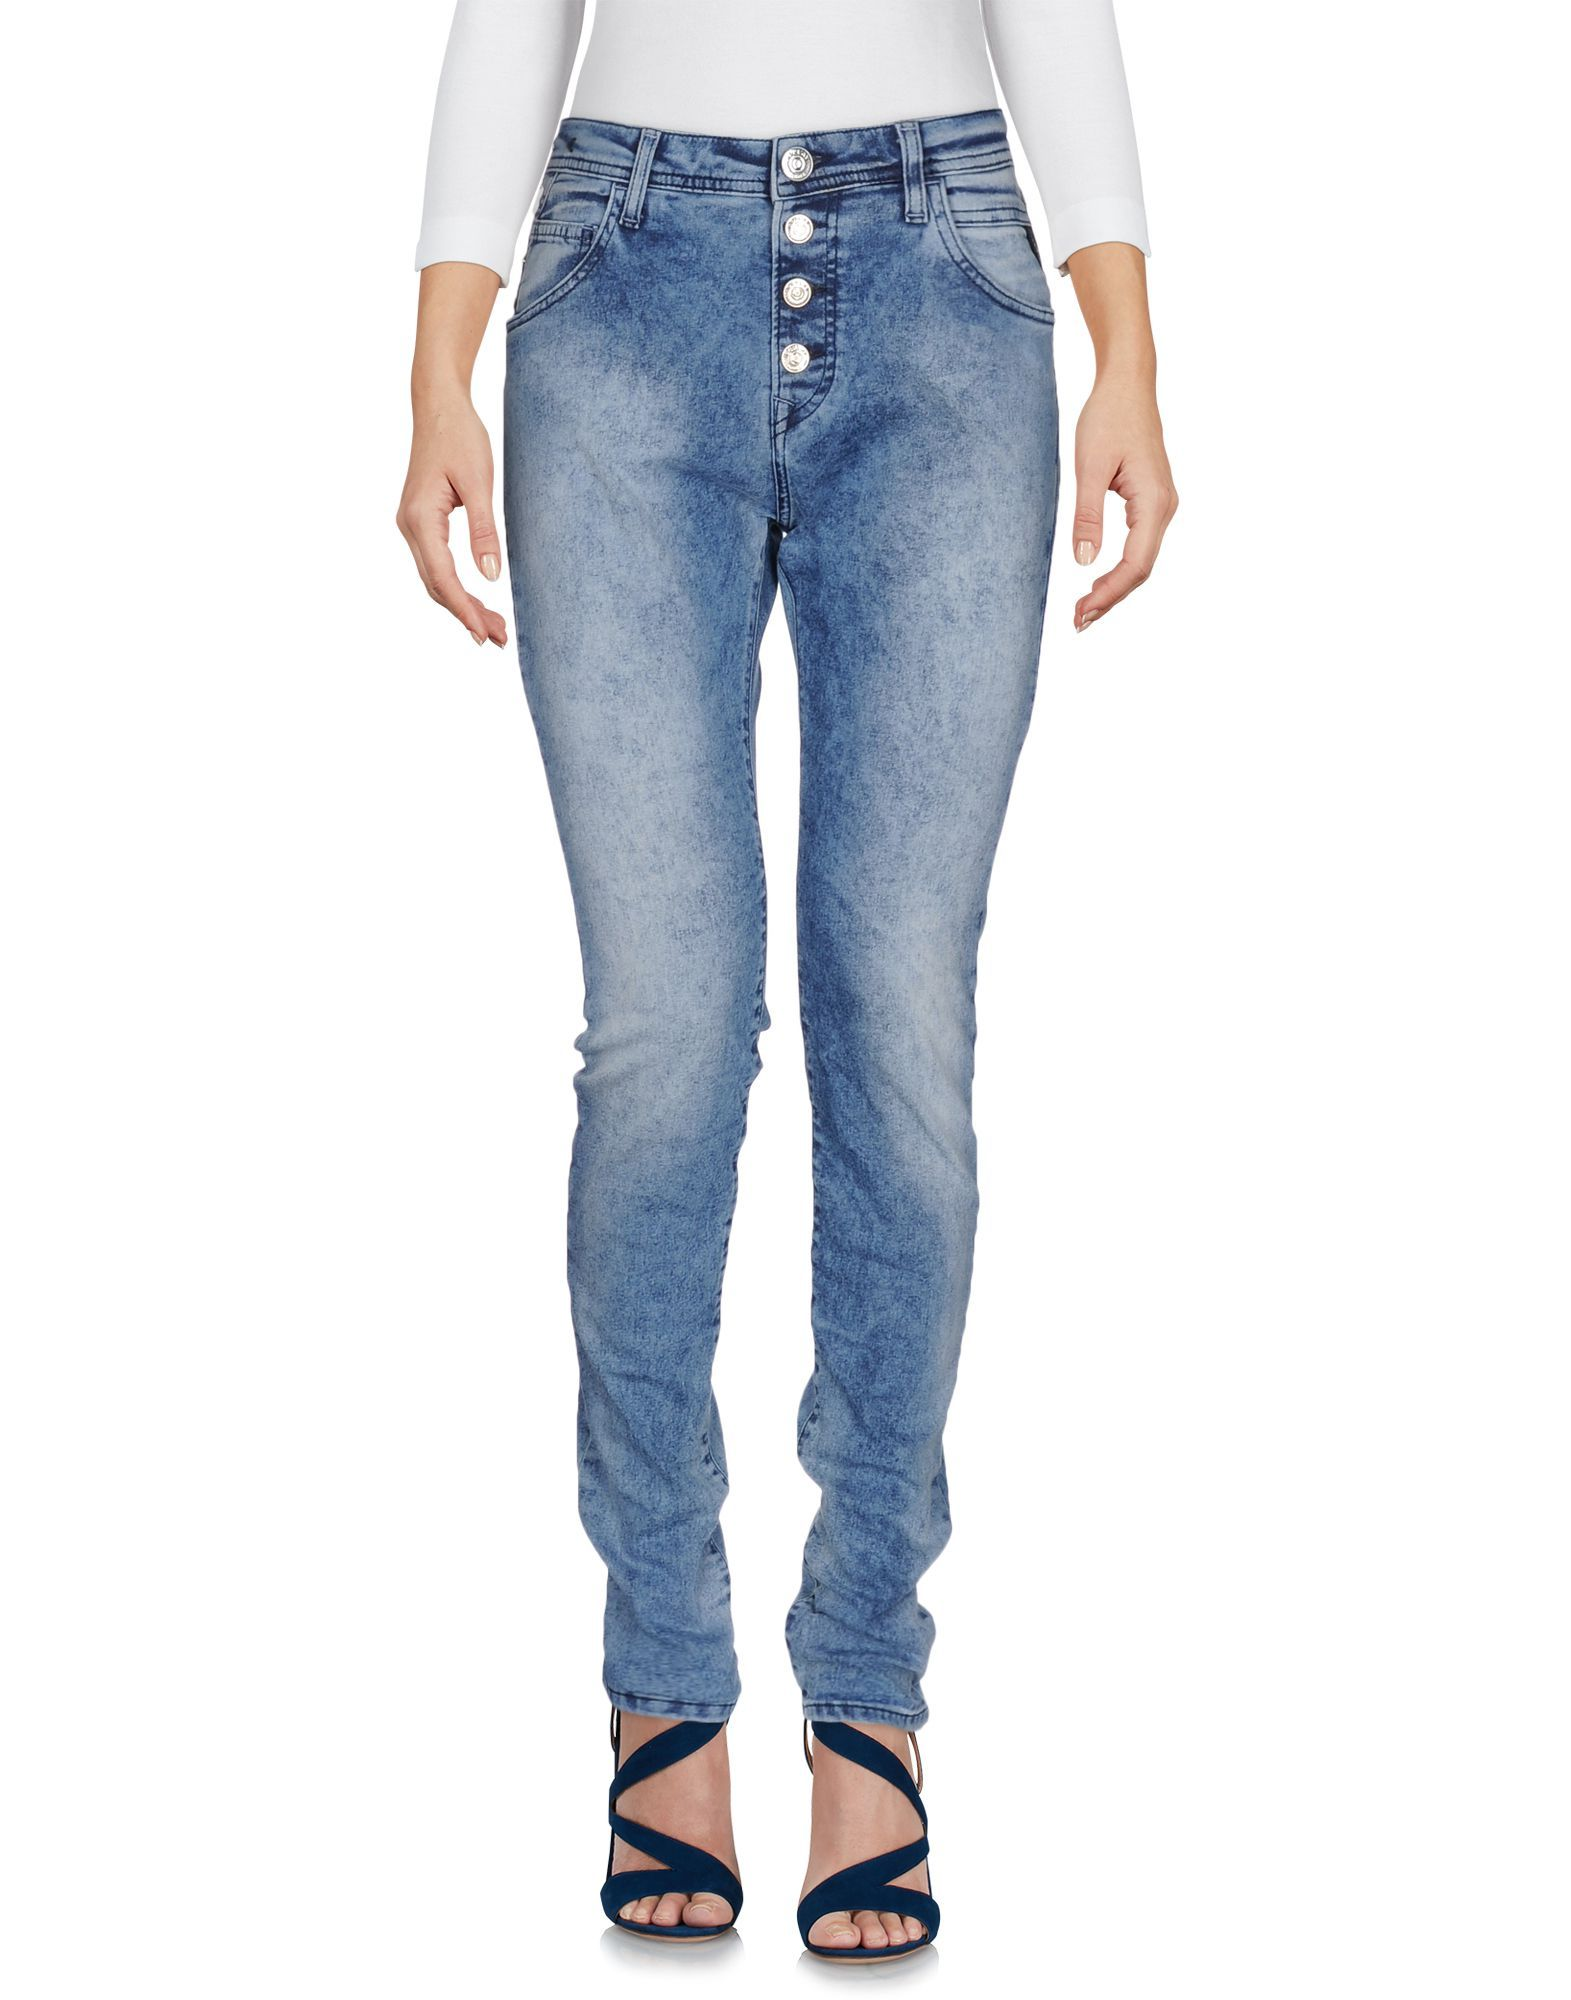 bbbf25656b Replay Women Denim Pants on YOOX. The best online selection of Denim Pants  Replay.